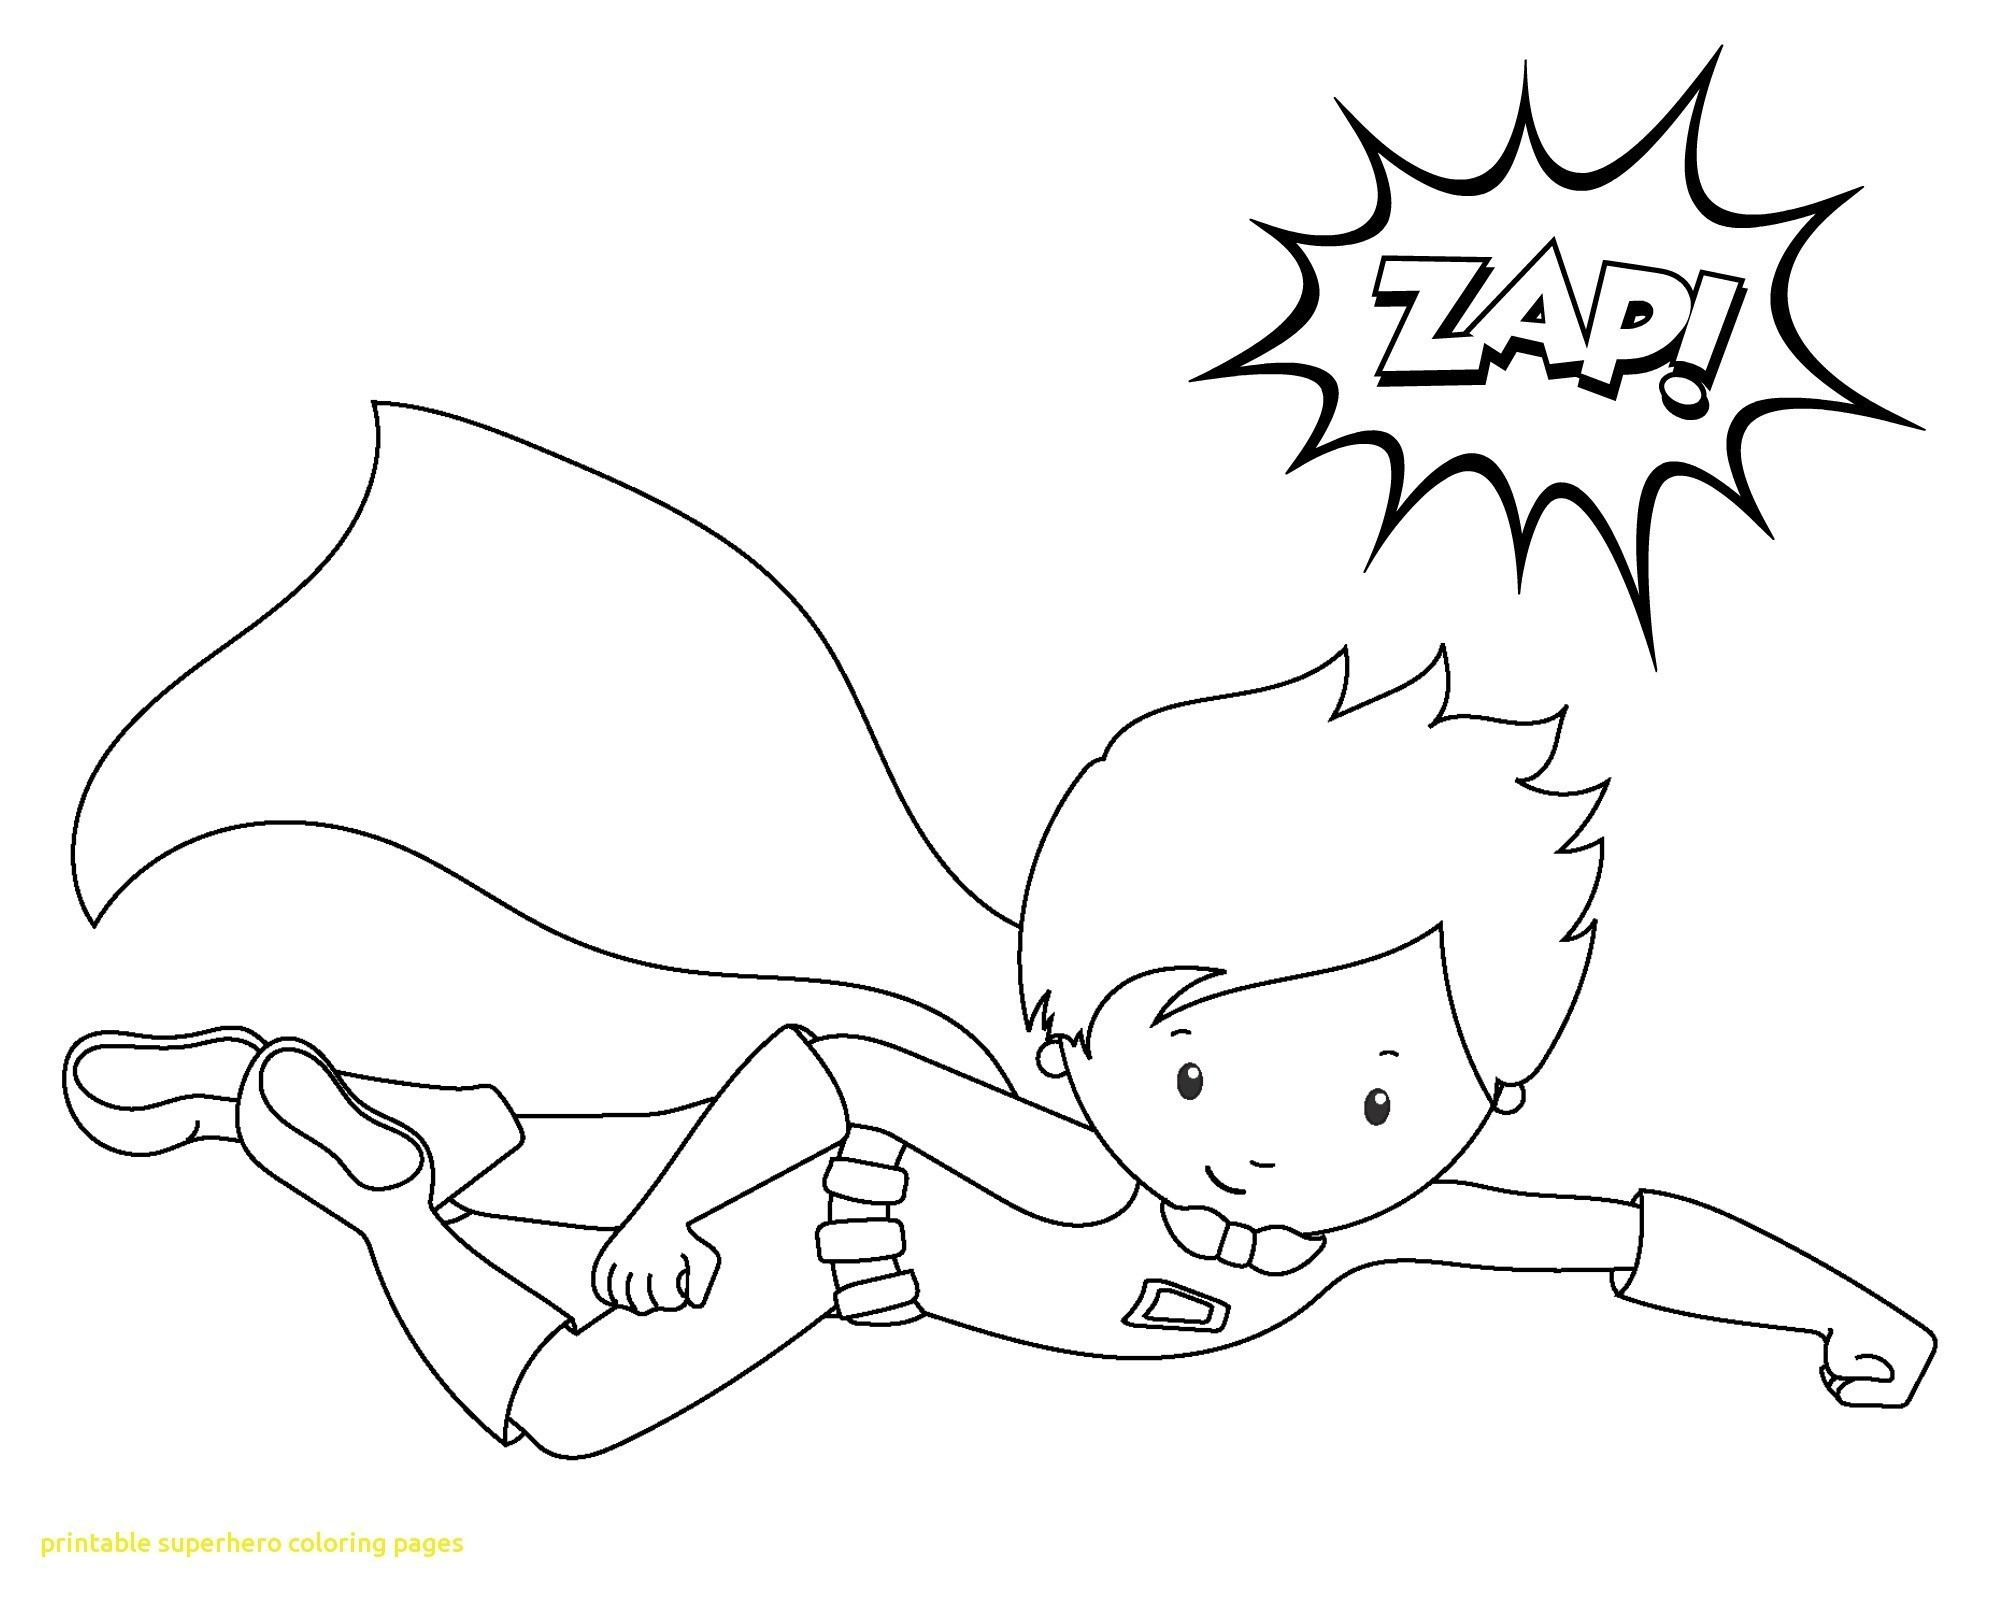 Cleaning Teeth Coloring Pages Jboyle Me Free Dental Books For Kids ... | 1600x2000